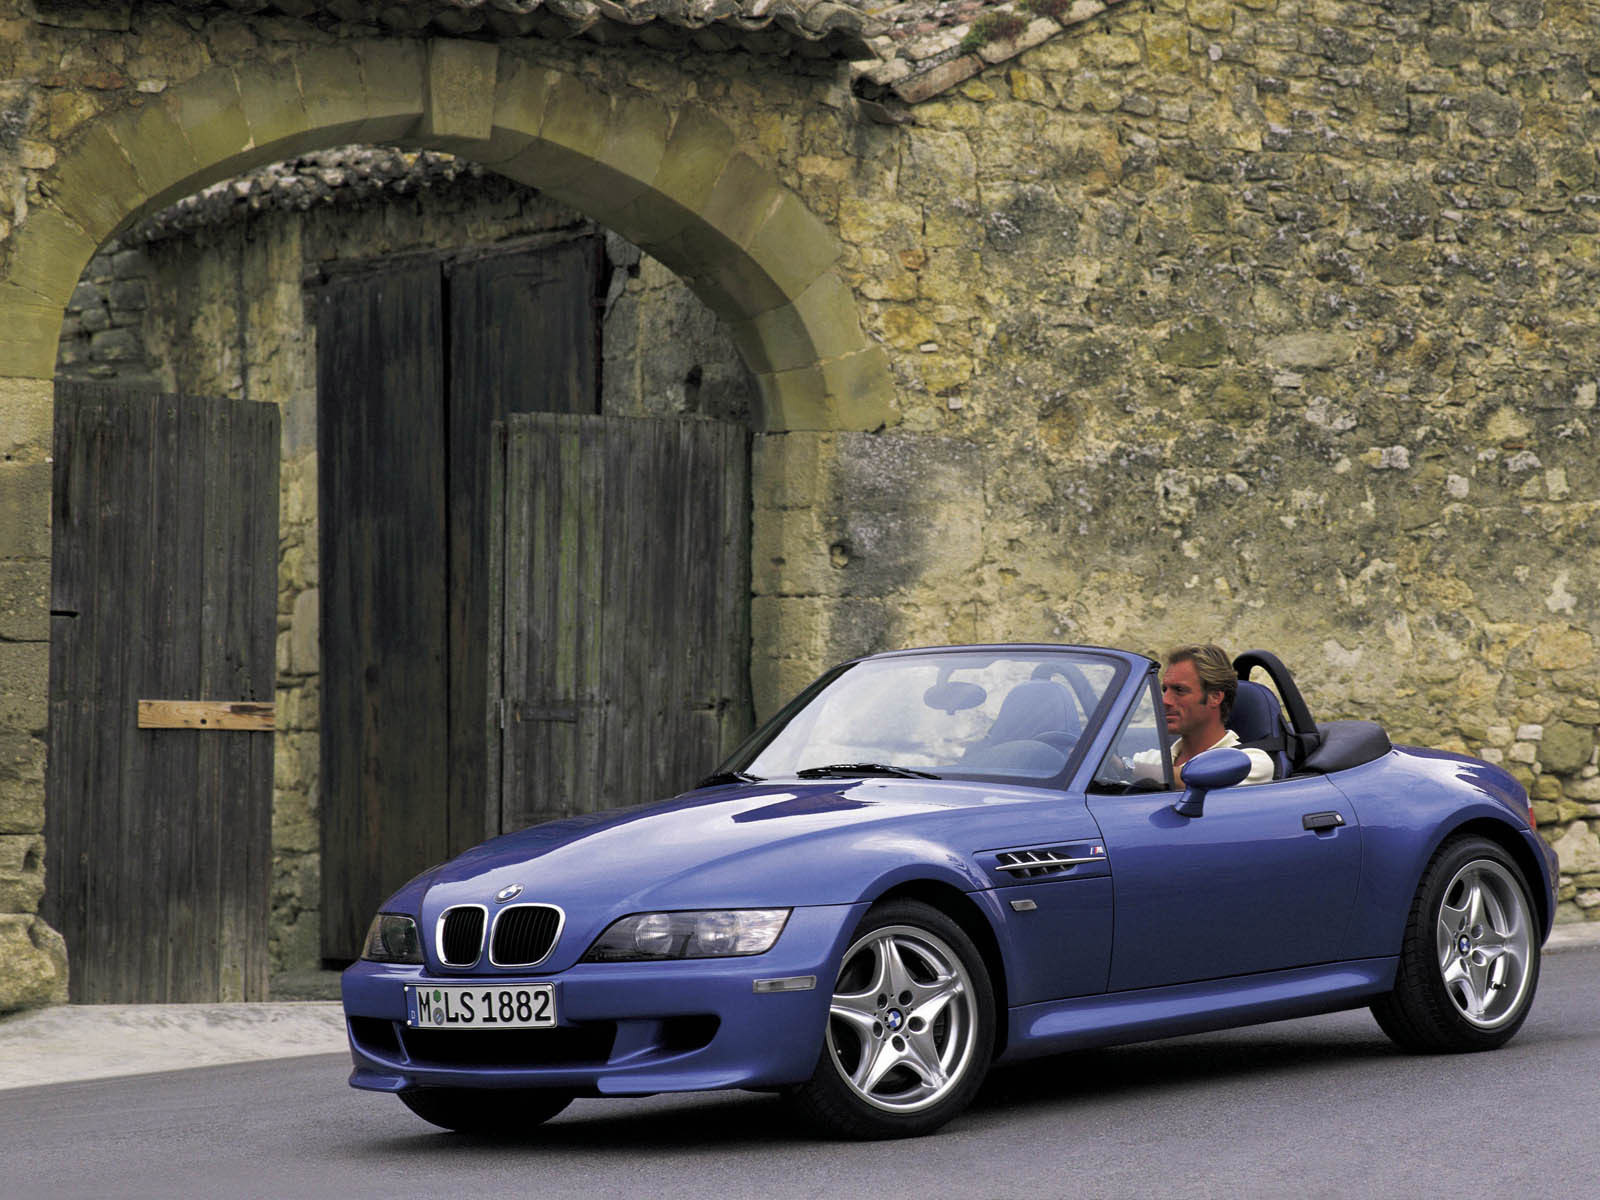 bmw z3 m roadster 1997 images #3